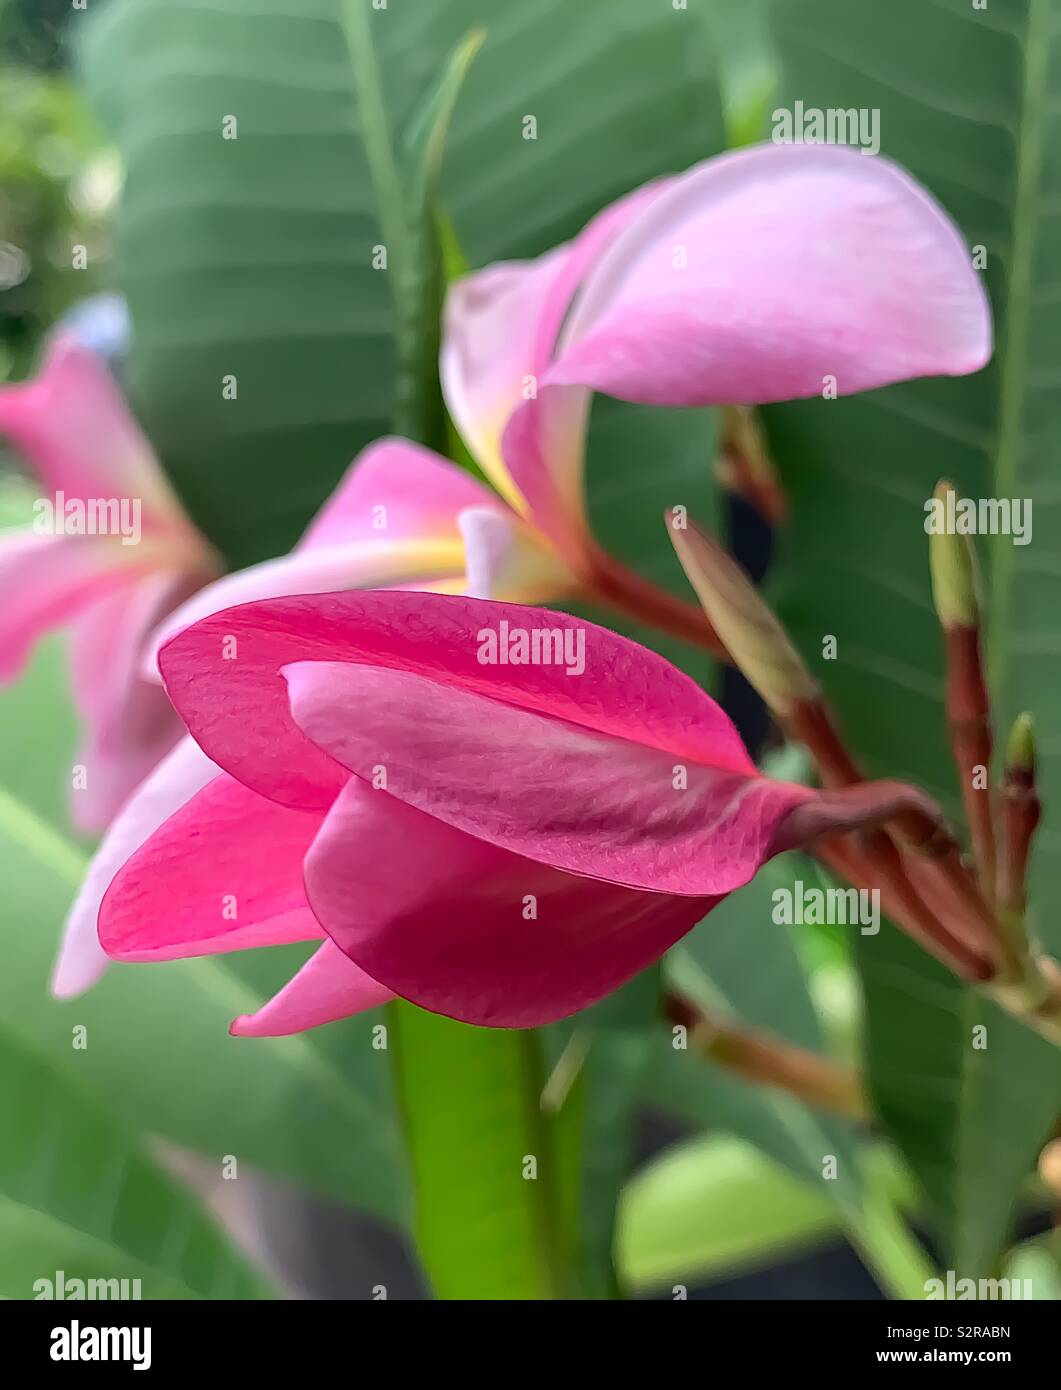 Petals of a pink plumeria before opening - Stock Image